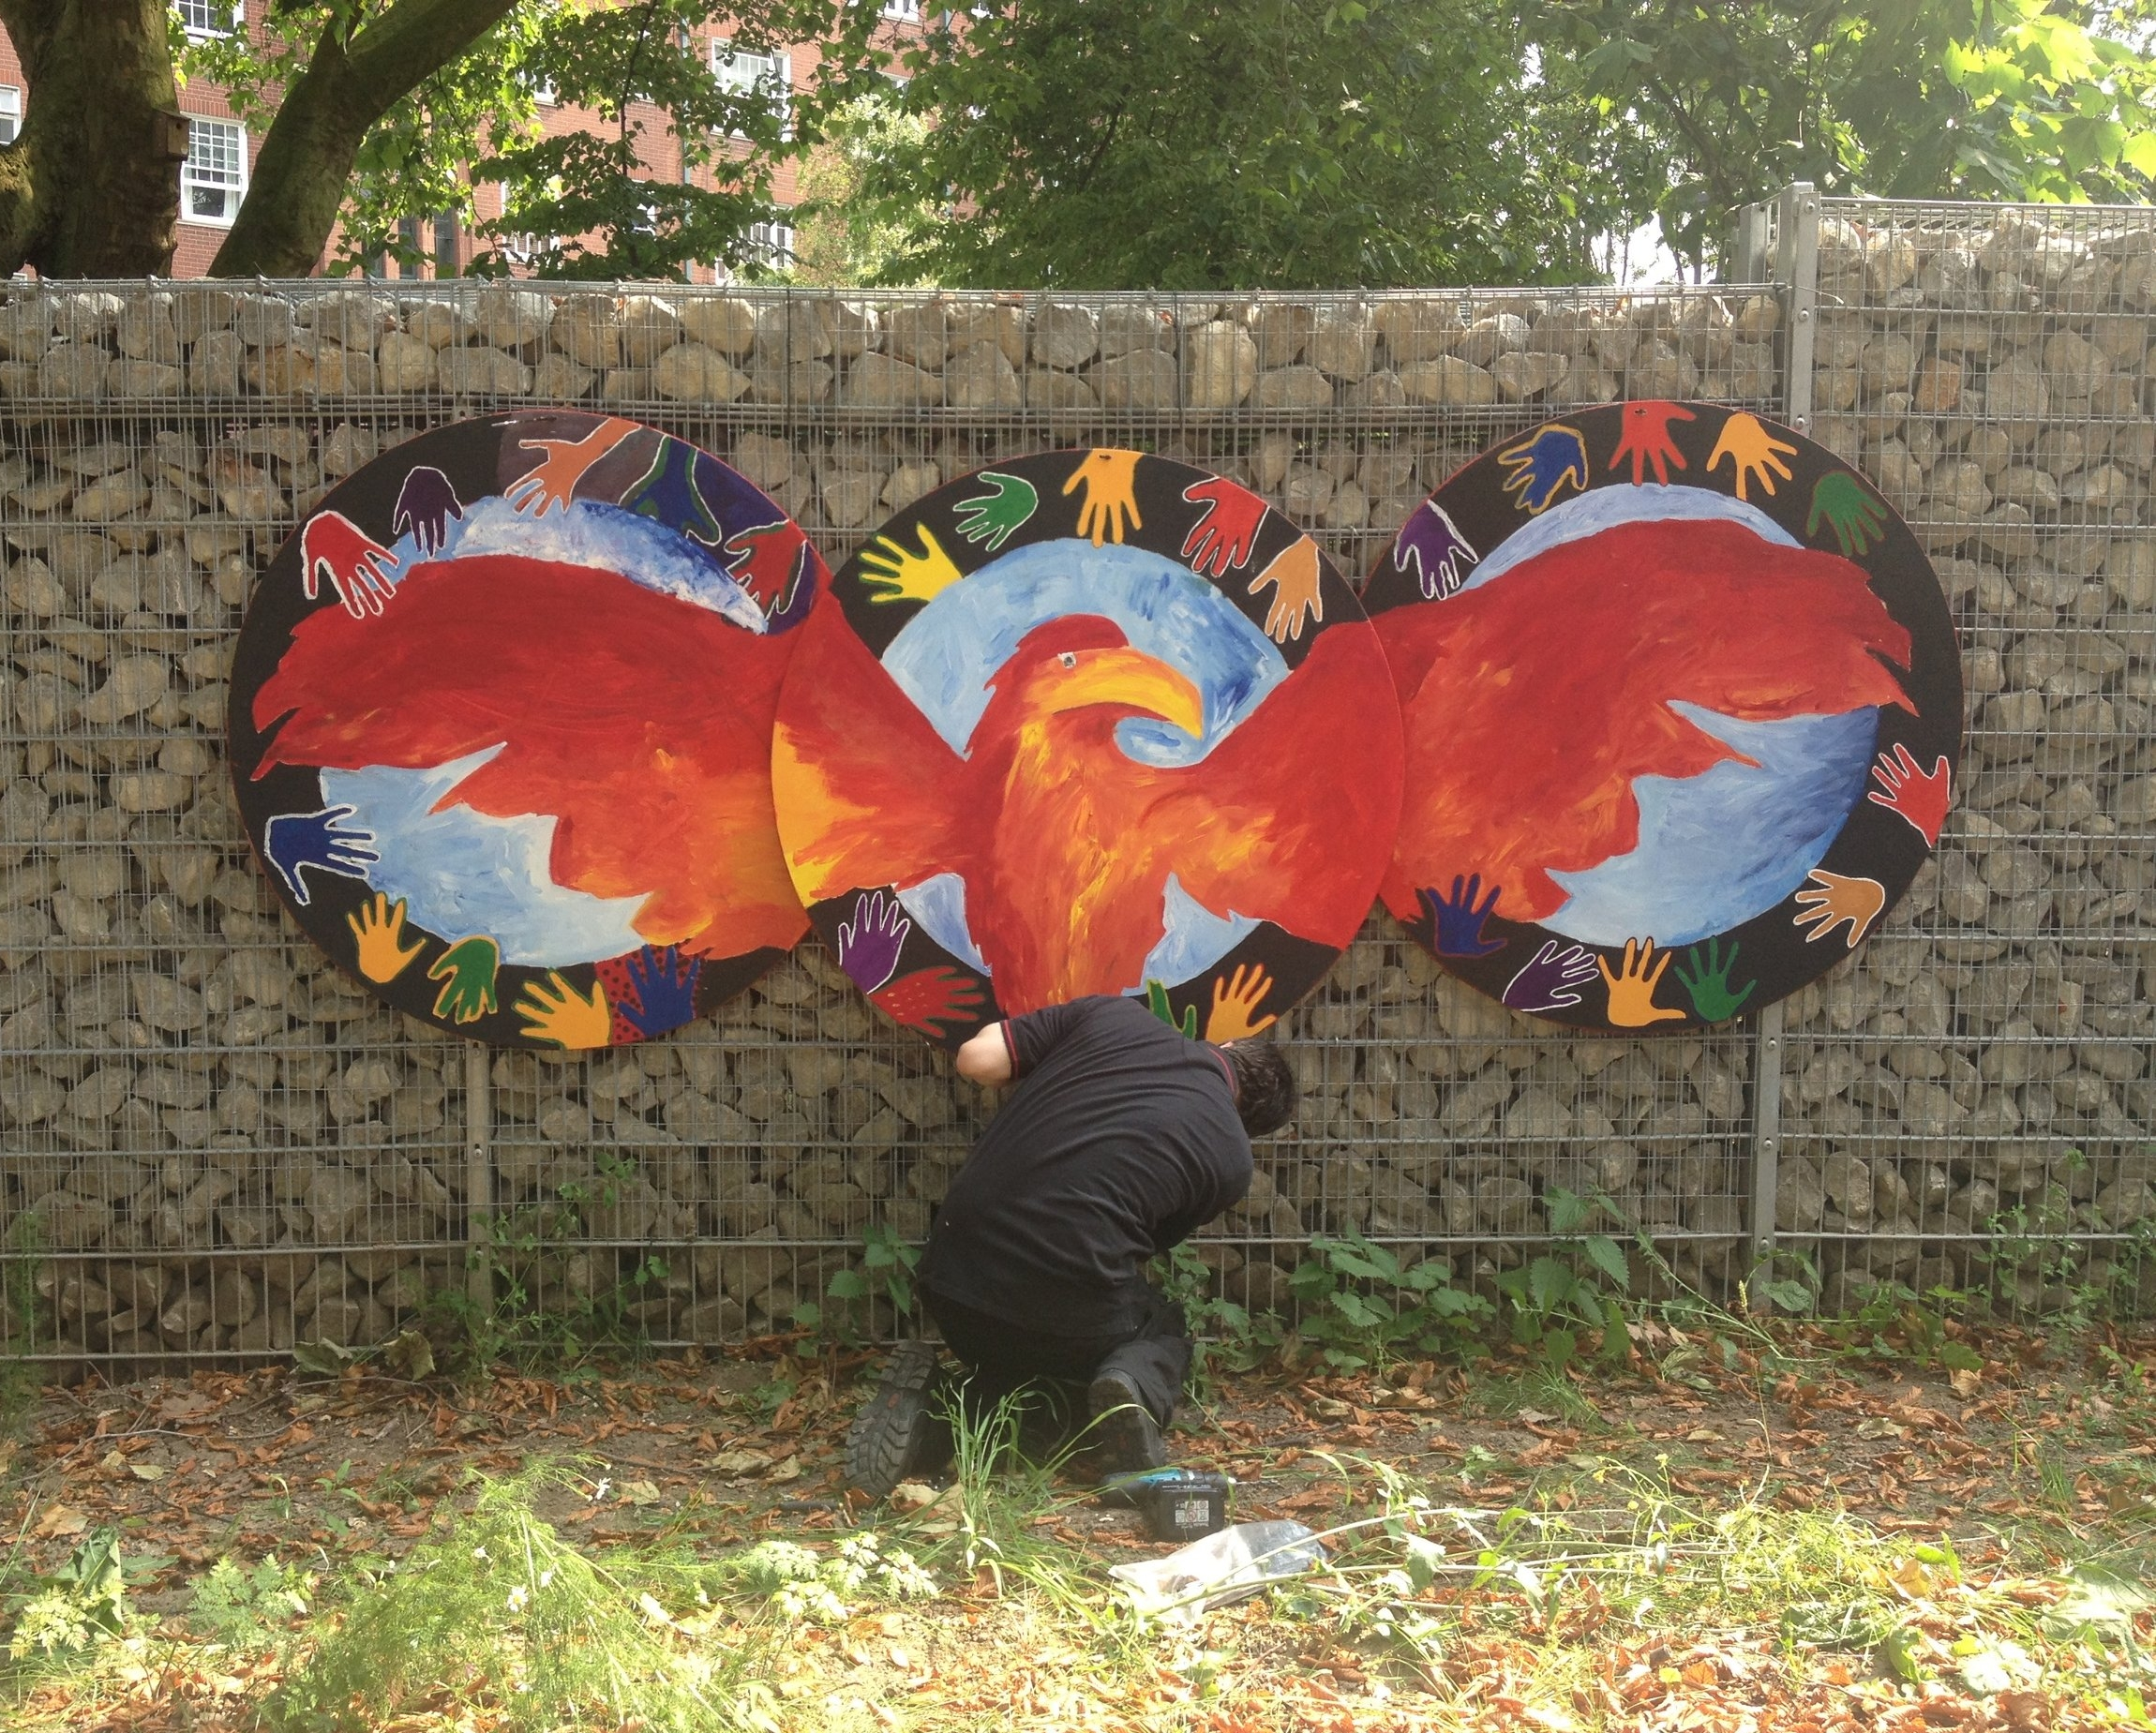 The Rise of the Phoenix - A one day workshop at Beachcroft School   The school wanted a bespoke design for their playground. Specifically, something to symbolise the rebirth and next chapter of their Year 11 leavers. I designed this 3 panelled phoenix which the students painted and and added their hands to. It now hangs in their playground.